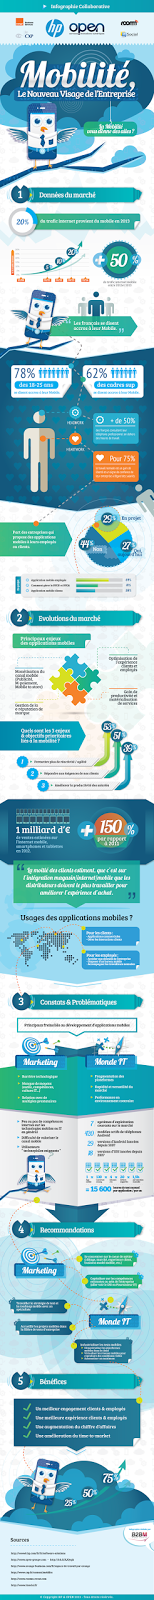 http://agence-marketing.com/campagne/infographie-mobilite.html